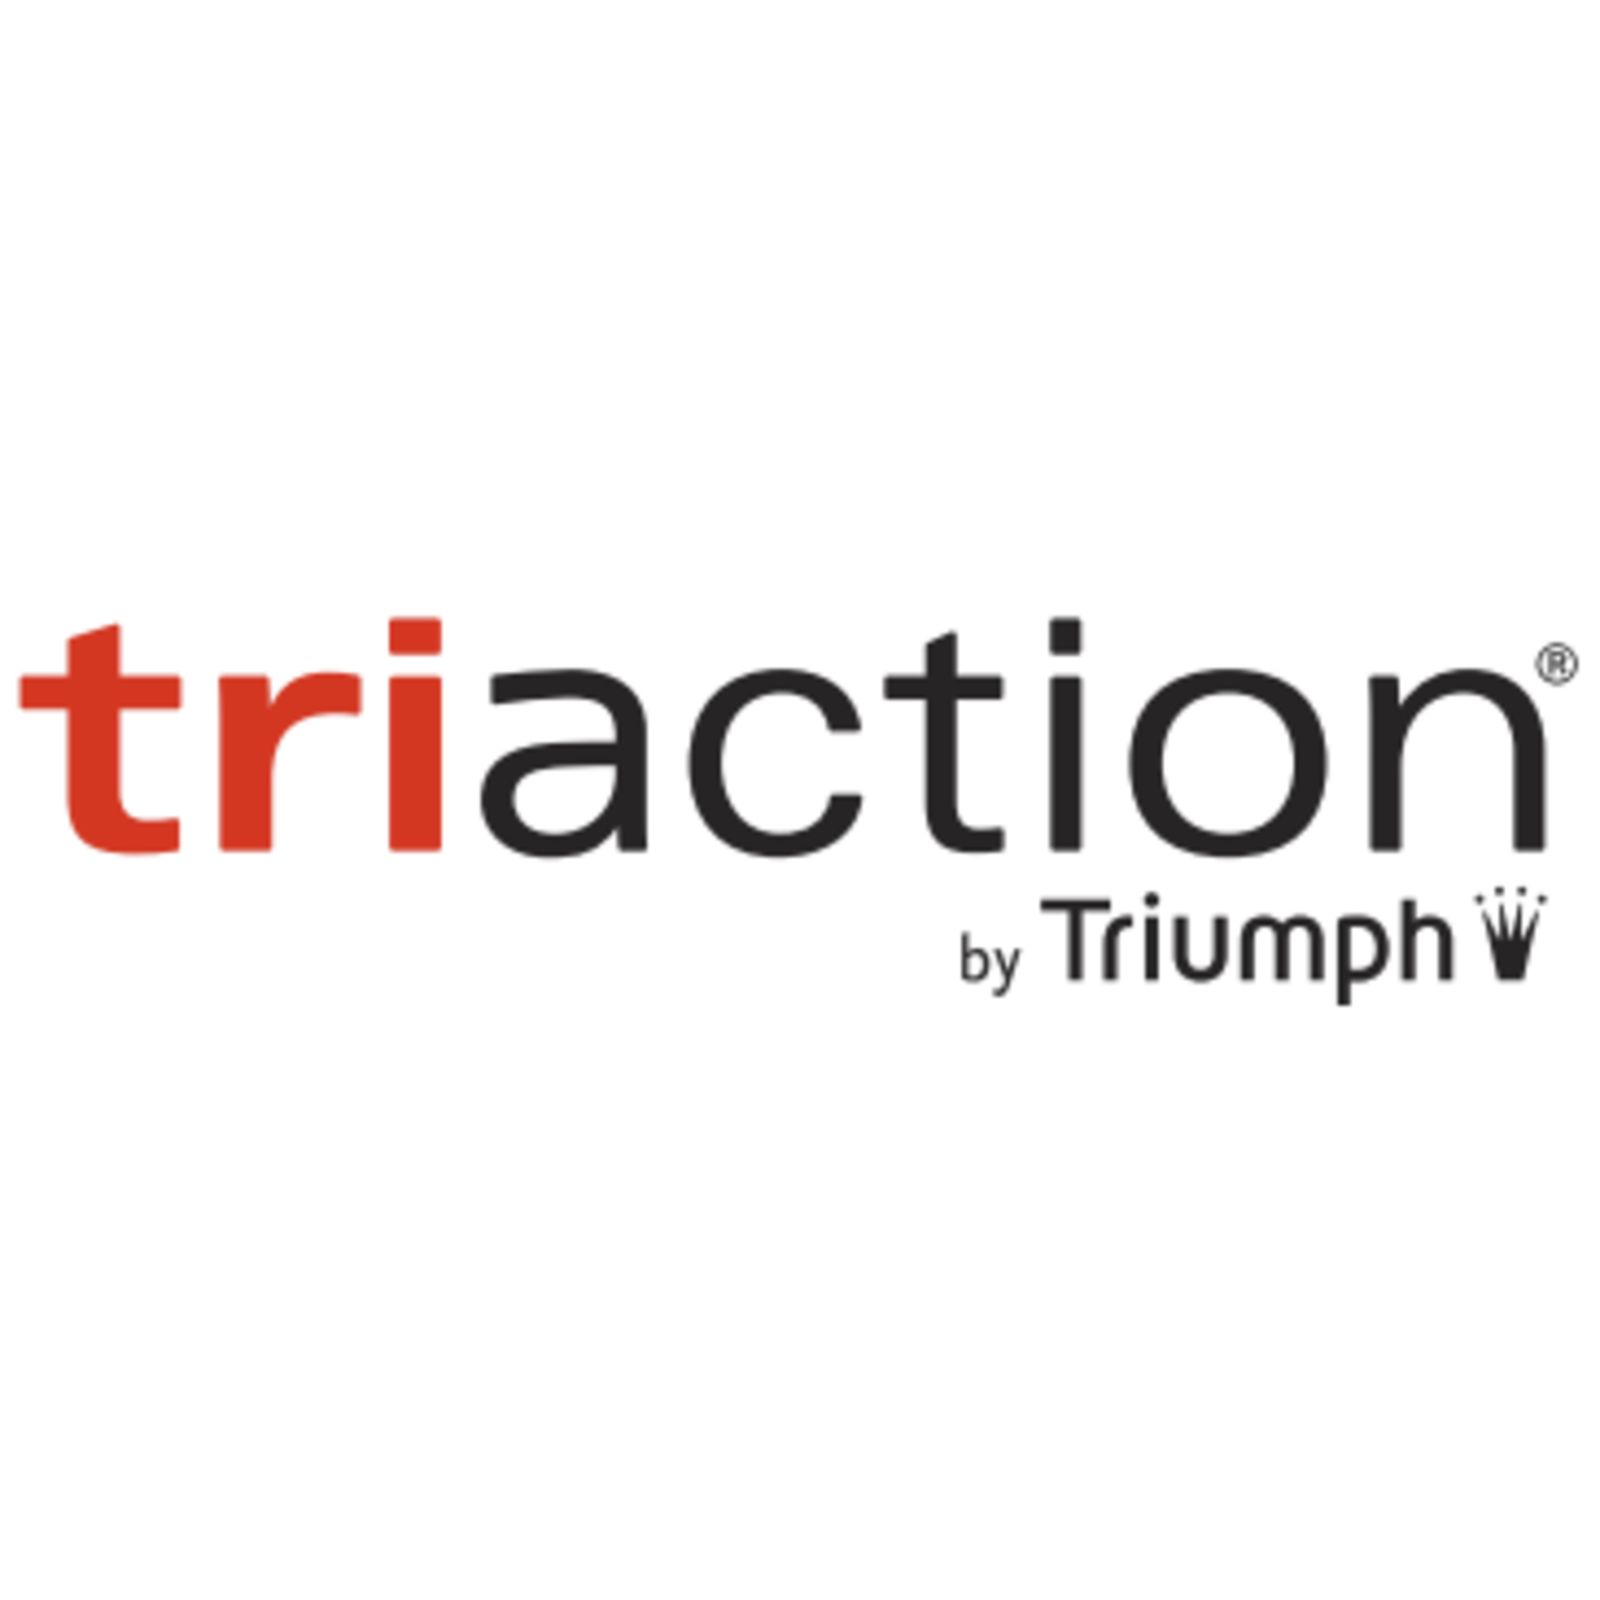 triaction by Triumph® (Image 1)